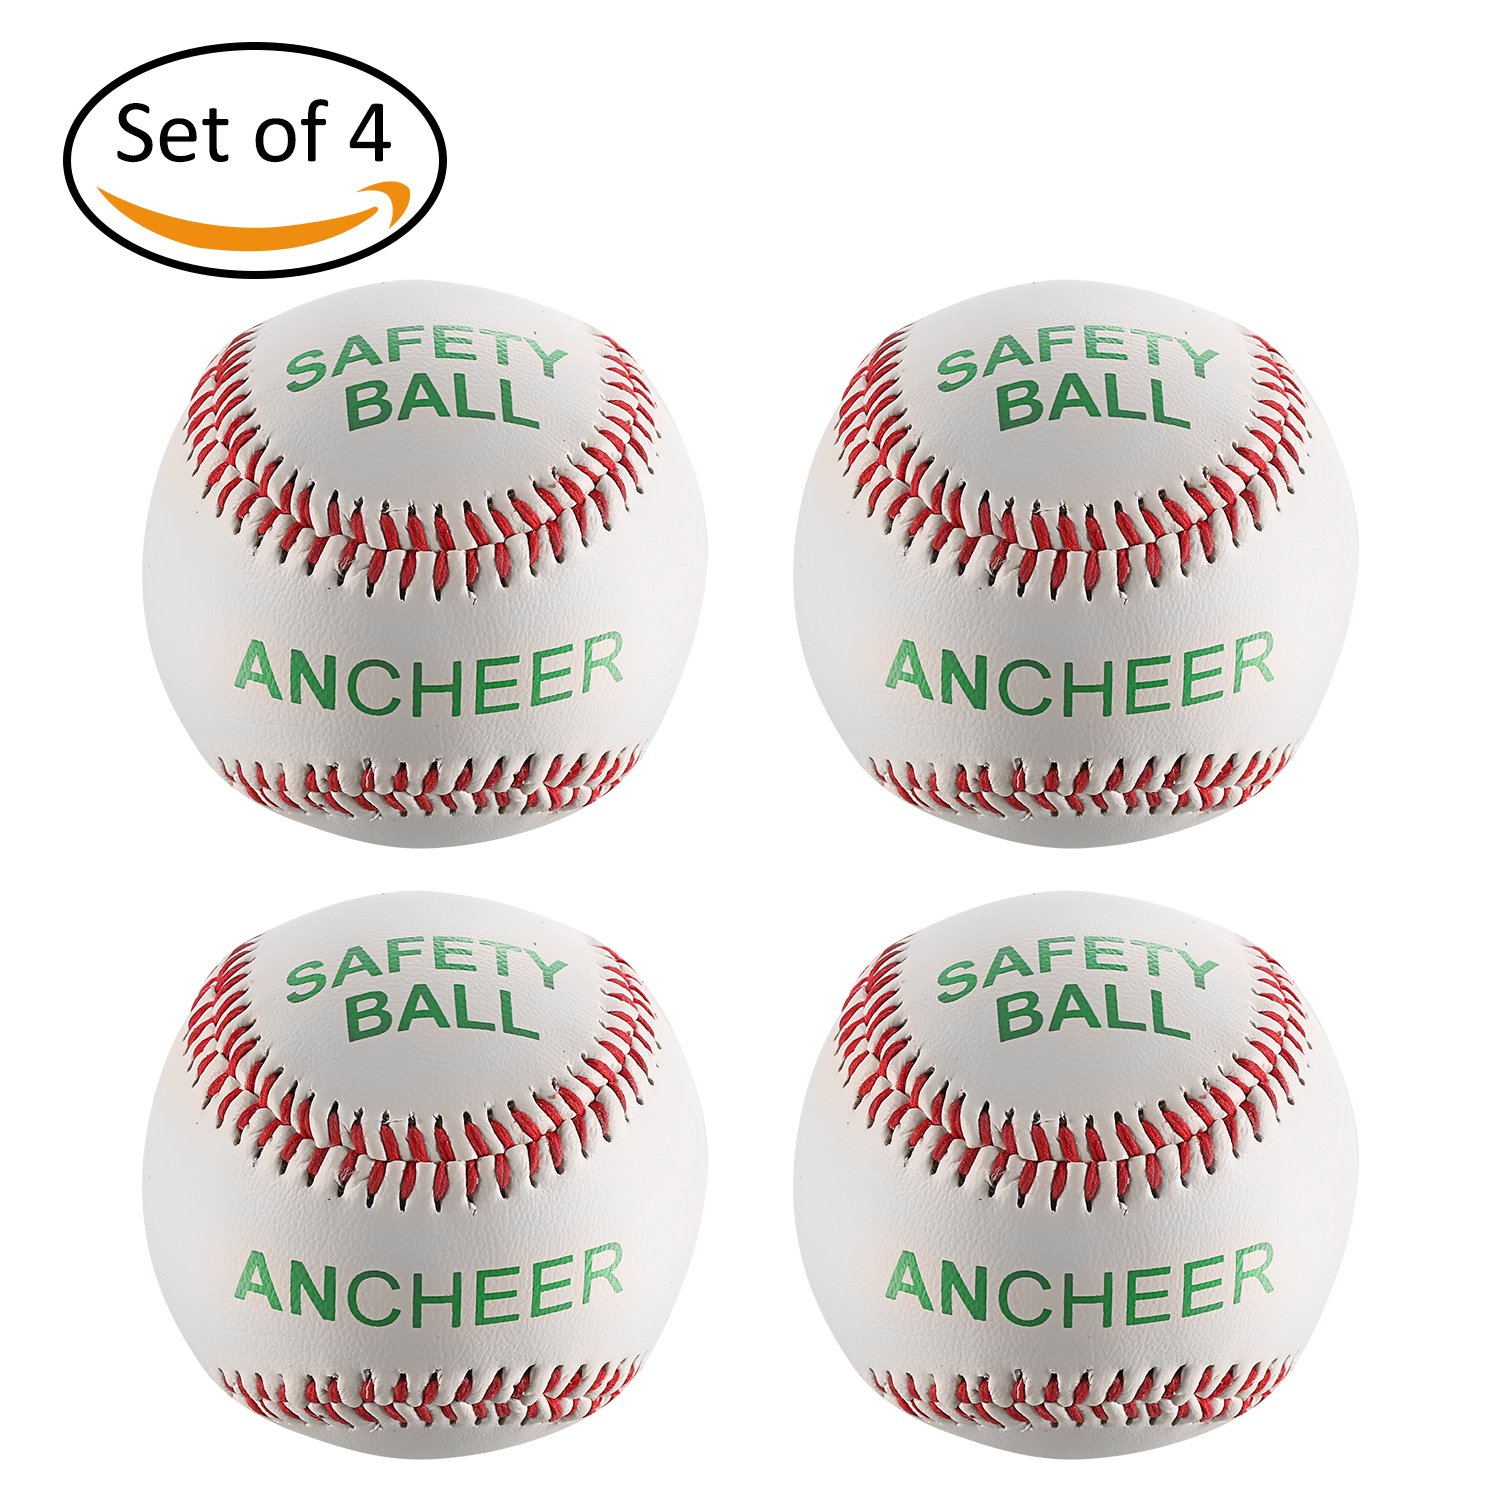 ANCHEER Baseball Bä lle Baseball Training Ball Anfä nger Softball Weiß , 9 Zoll 142.8 g PVC kautschukartige Kern Softball